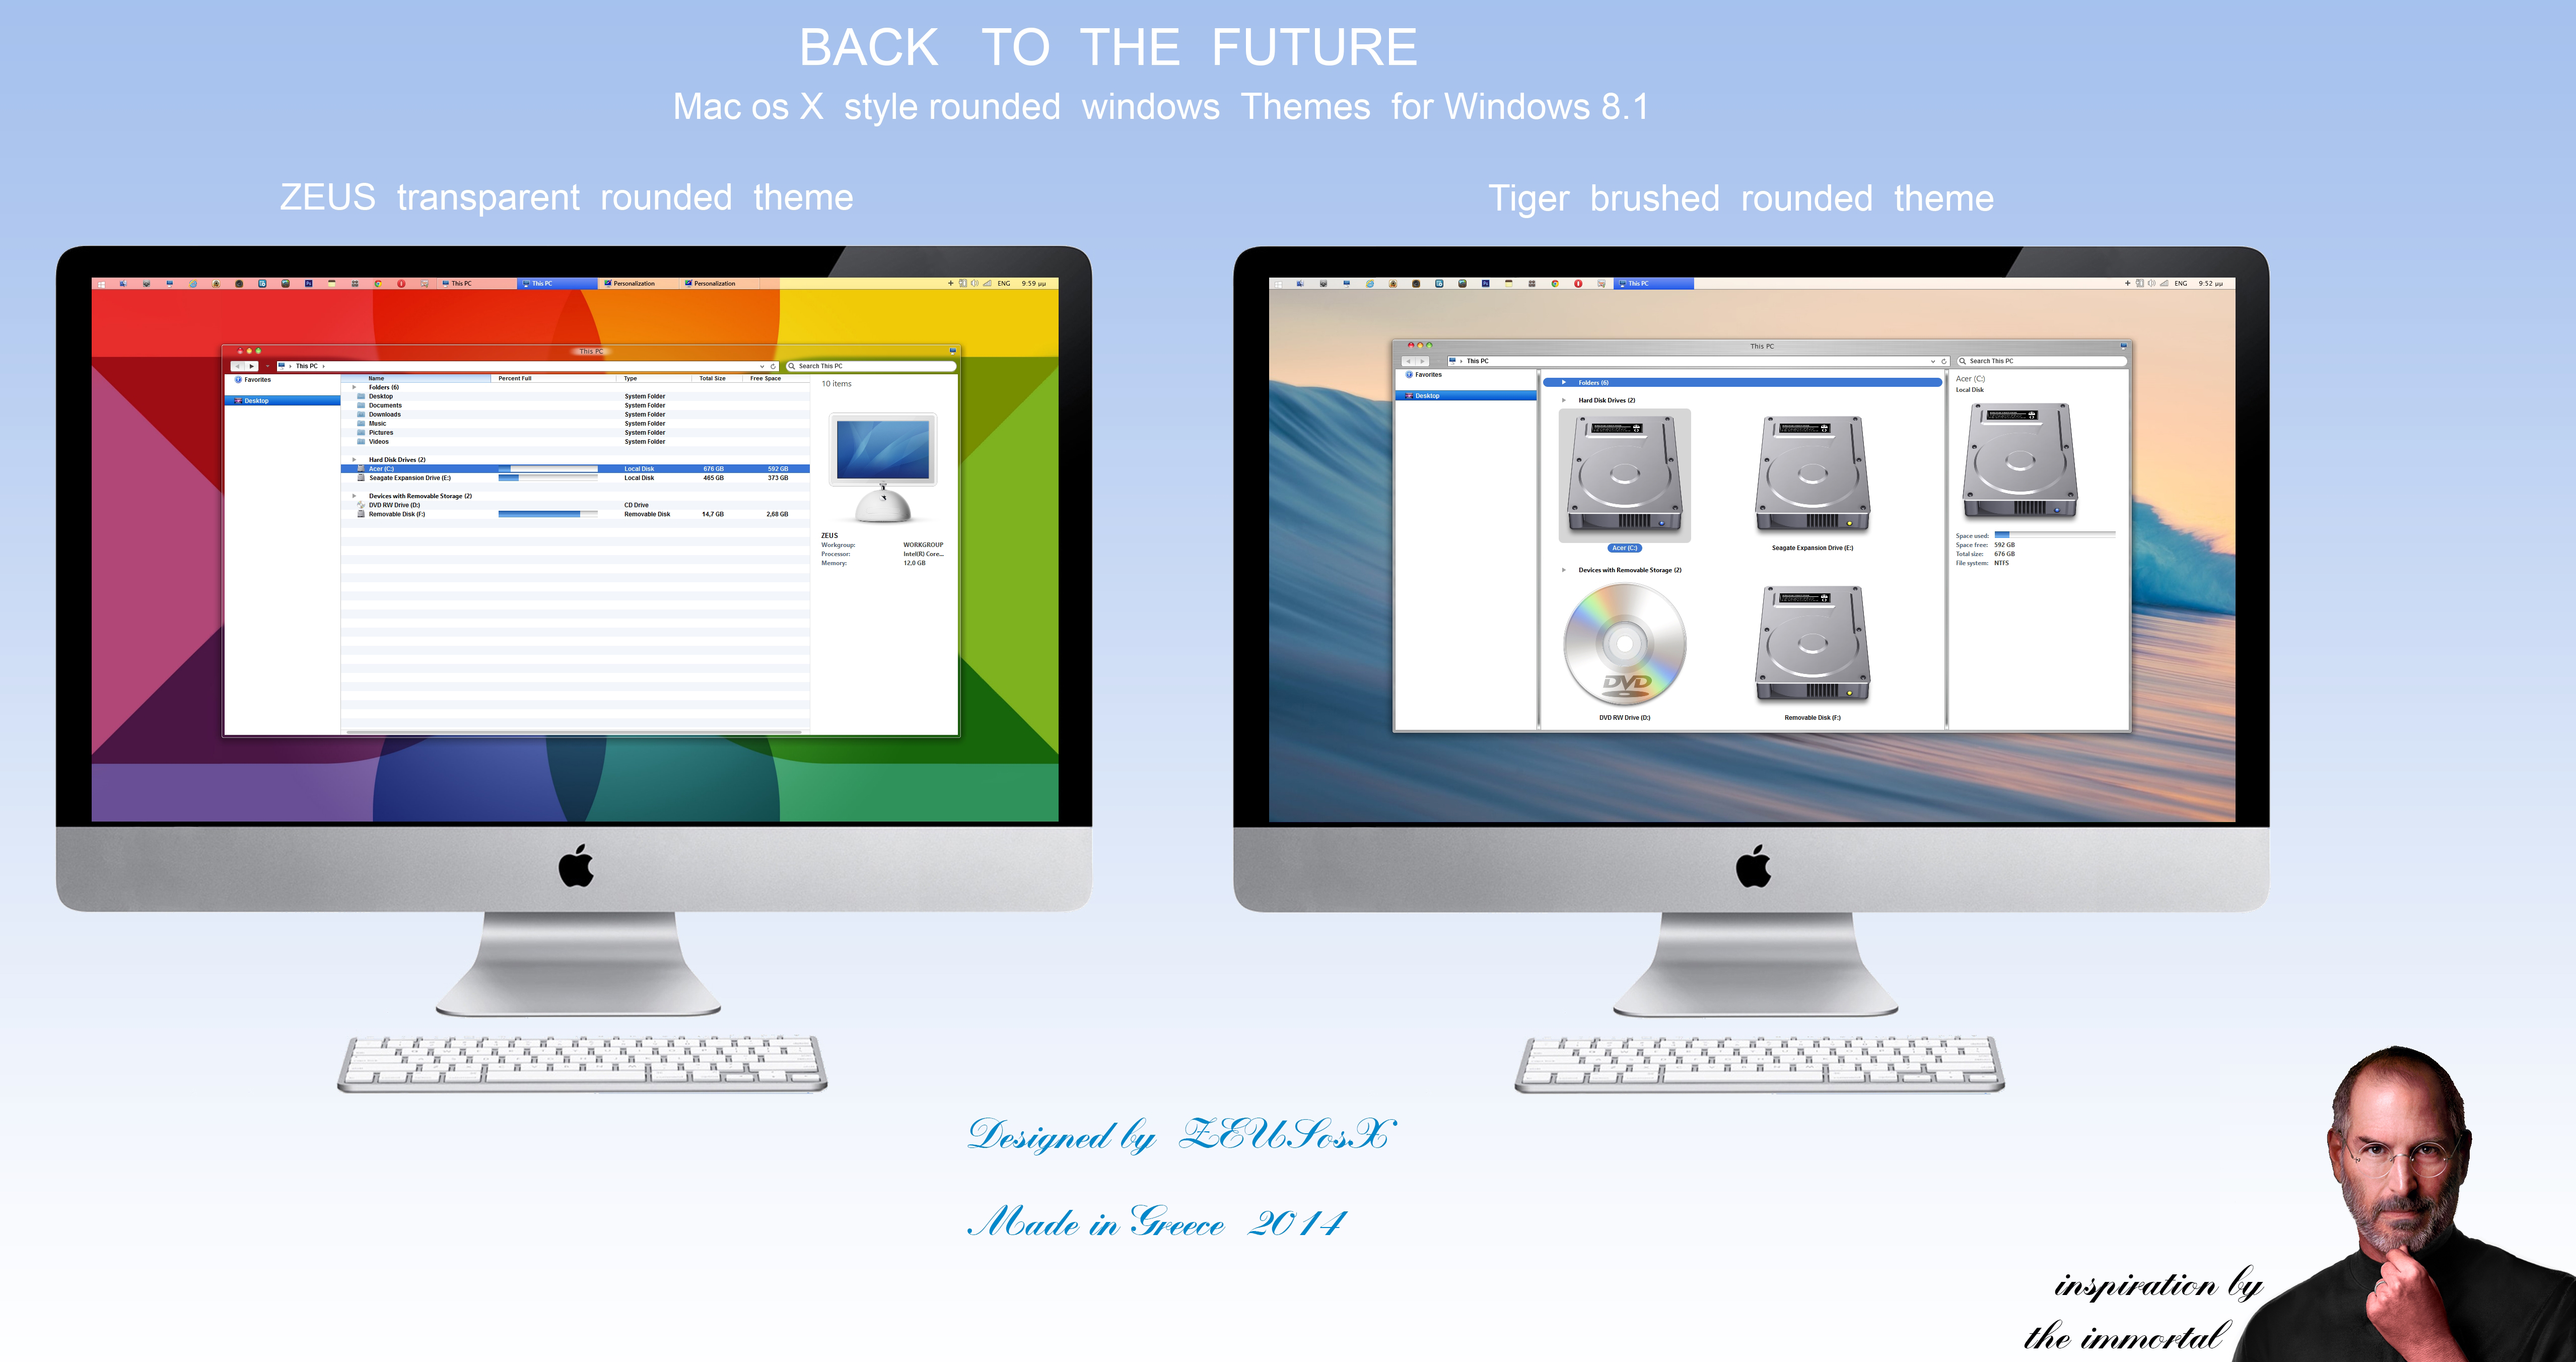 Macos X style theme for Windows 8 1 by ZEUSosX on DeviantArt